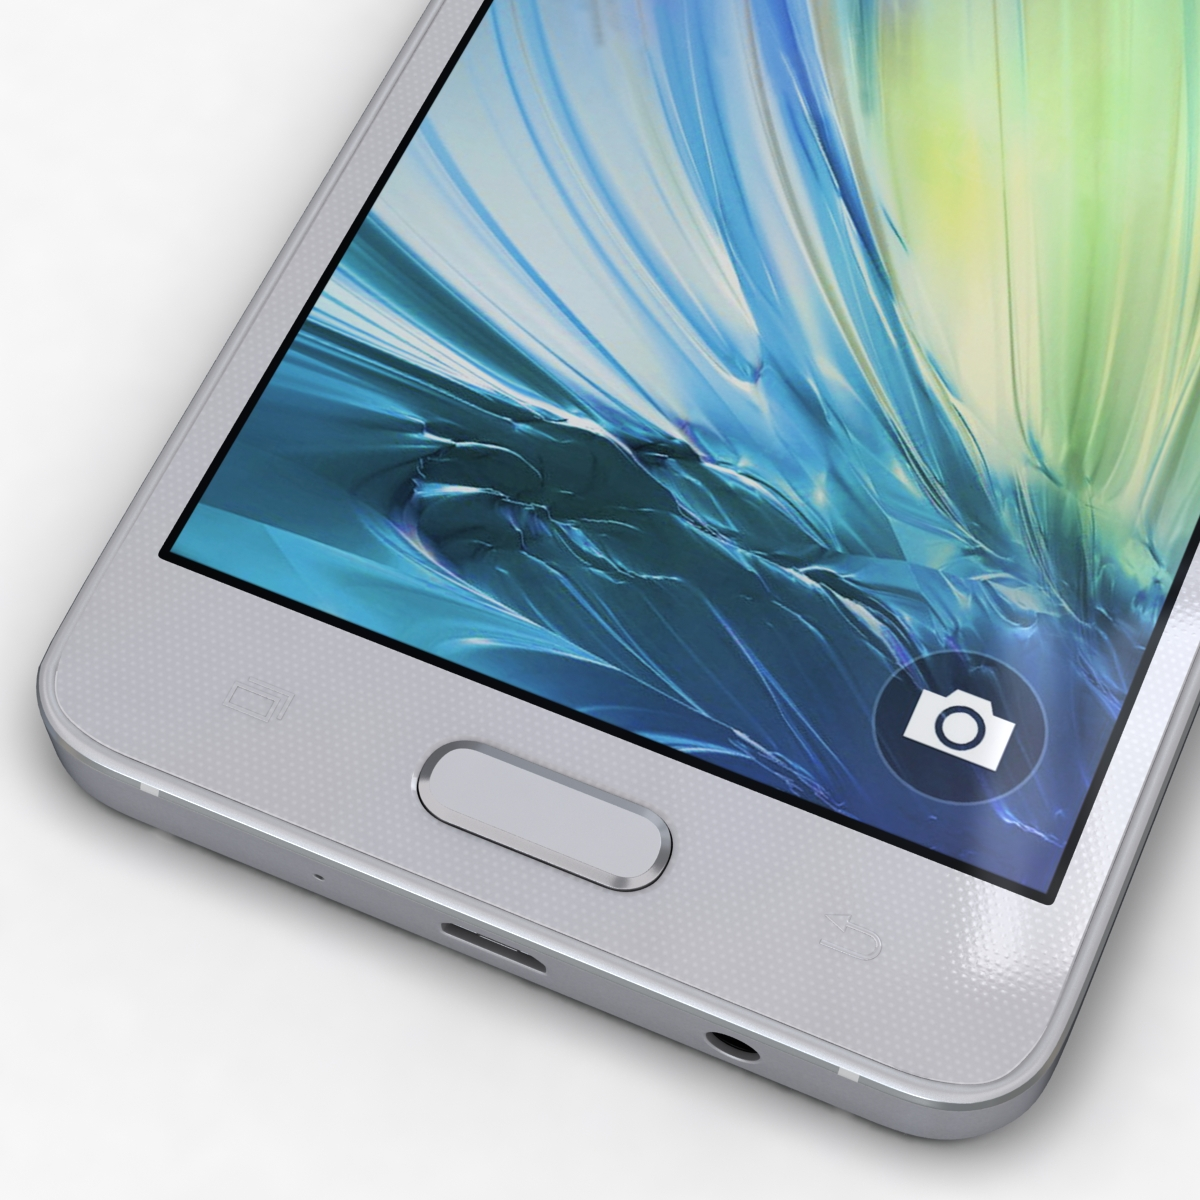 samsung galaxy a3 and a3 duos silver 3d model 3ds max fbx c4d obj 208312